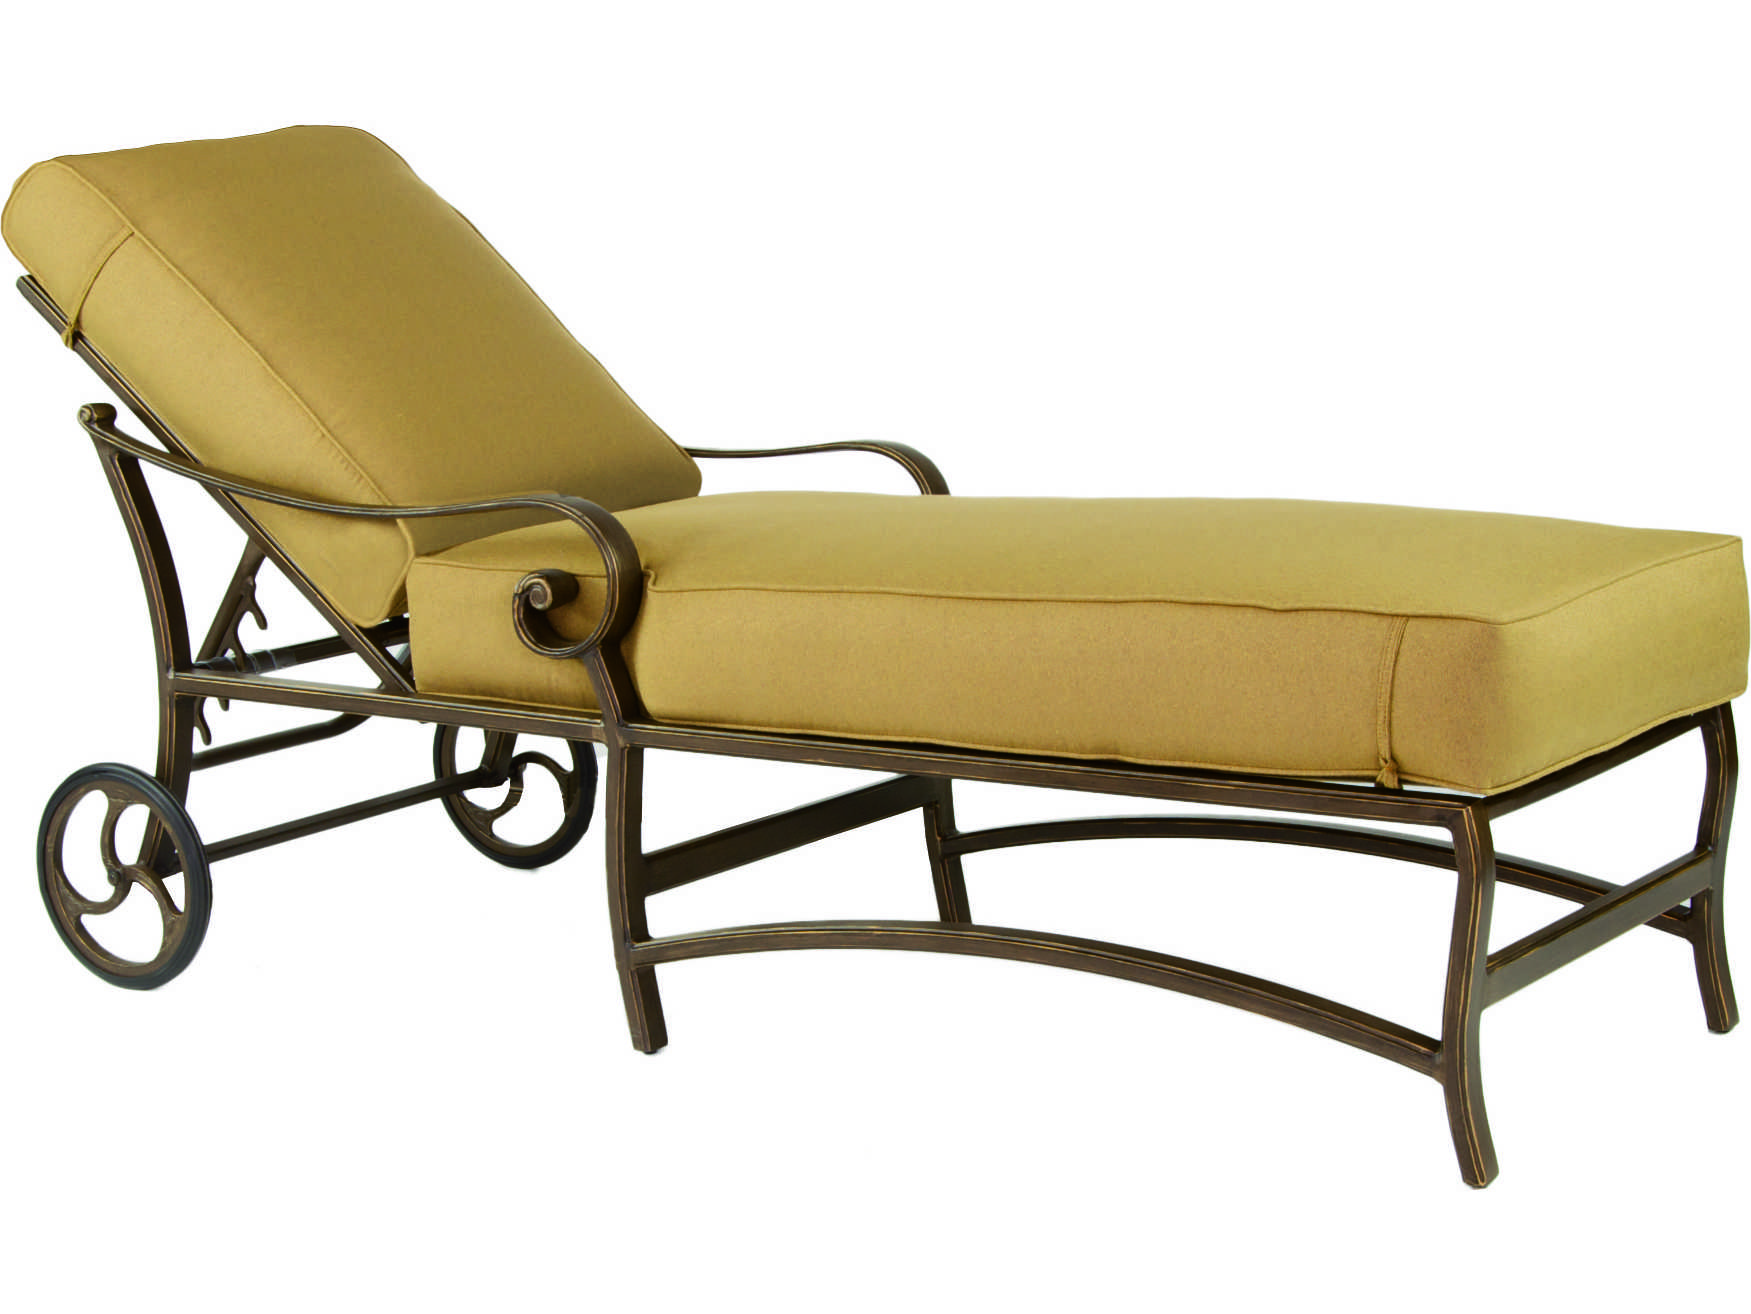 metal lounge chair with wheels glider rocking cushion pattern castelle veracruz cast aluminum adjustable chaise